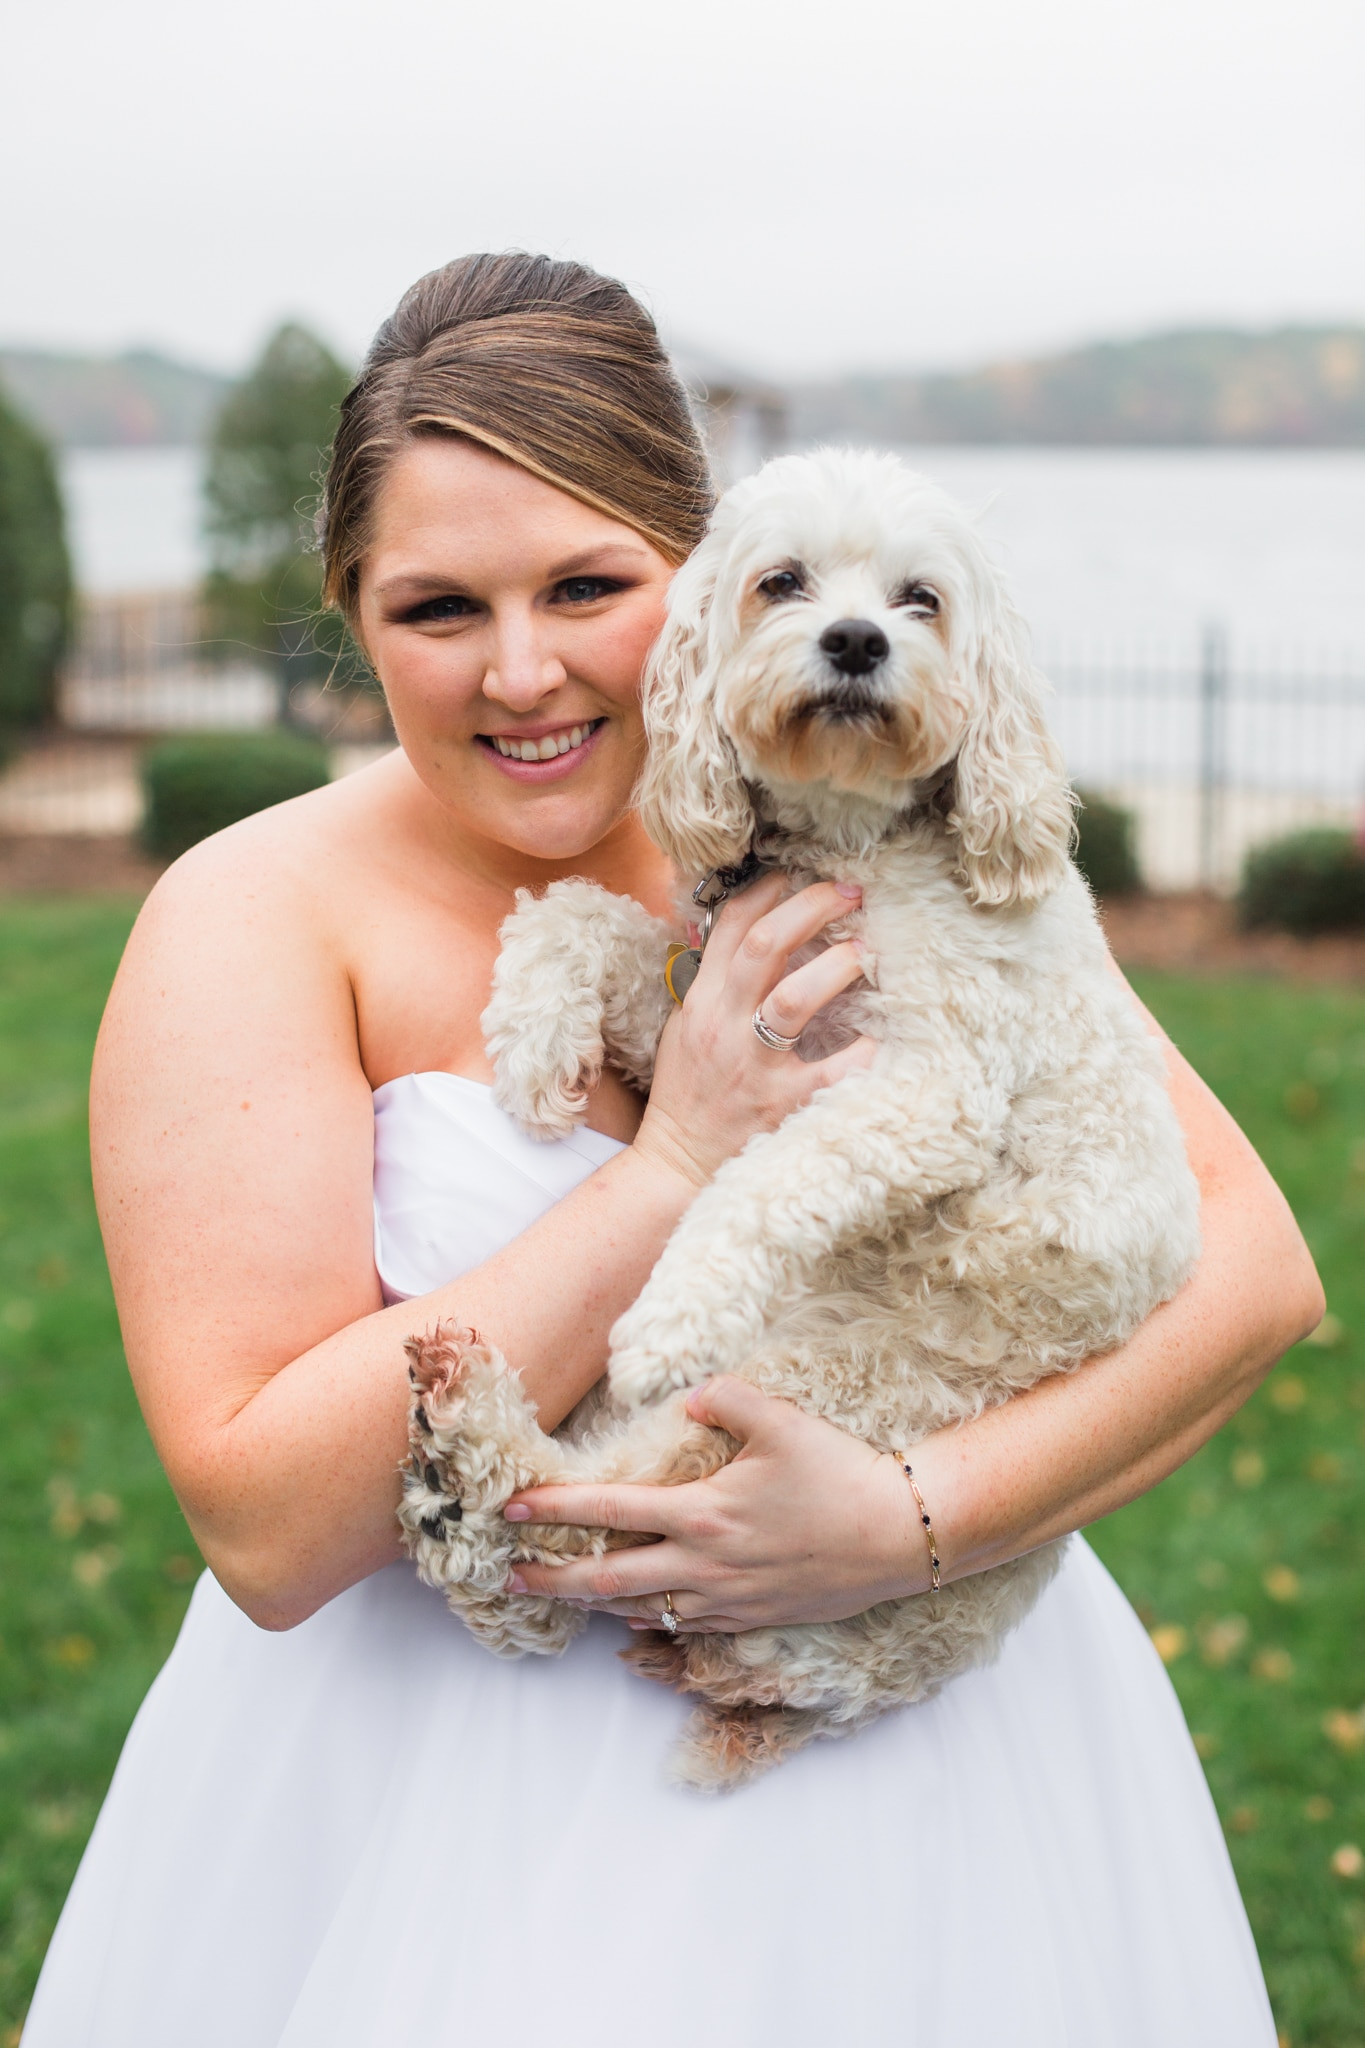 Bride poses with dog at a Peninsula Yacht Club wedding captured by Samantha Laffoon Photography